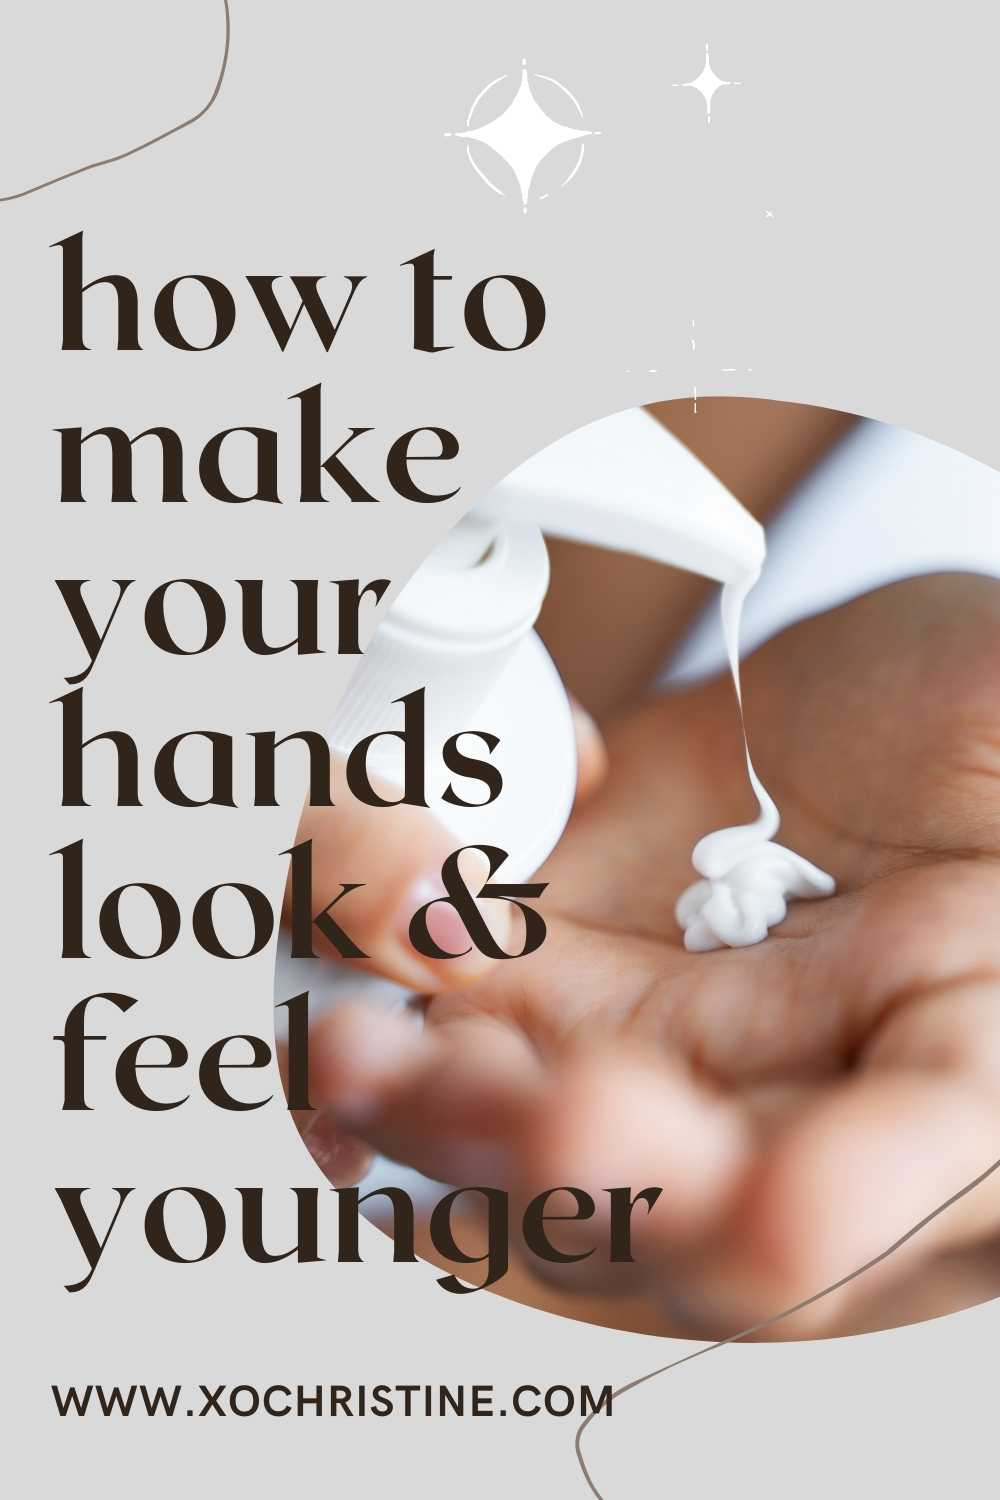 How to make old hands look younger in no time (10+ Proven ways!)